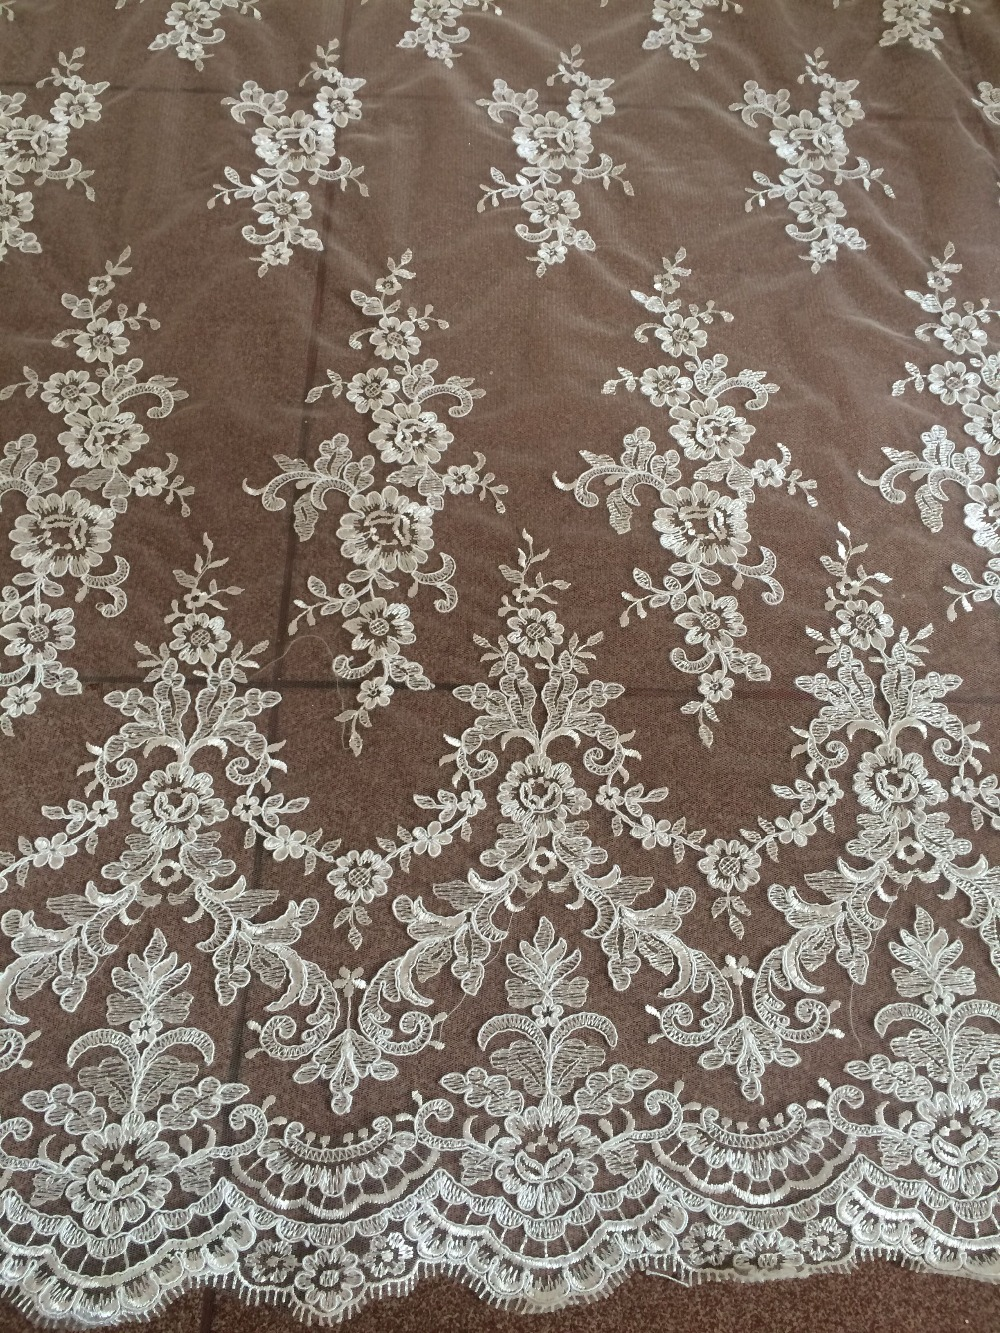 High Class Embroidery French Lace Fabric African Laces Fabric tulle lace CiCi 32511